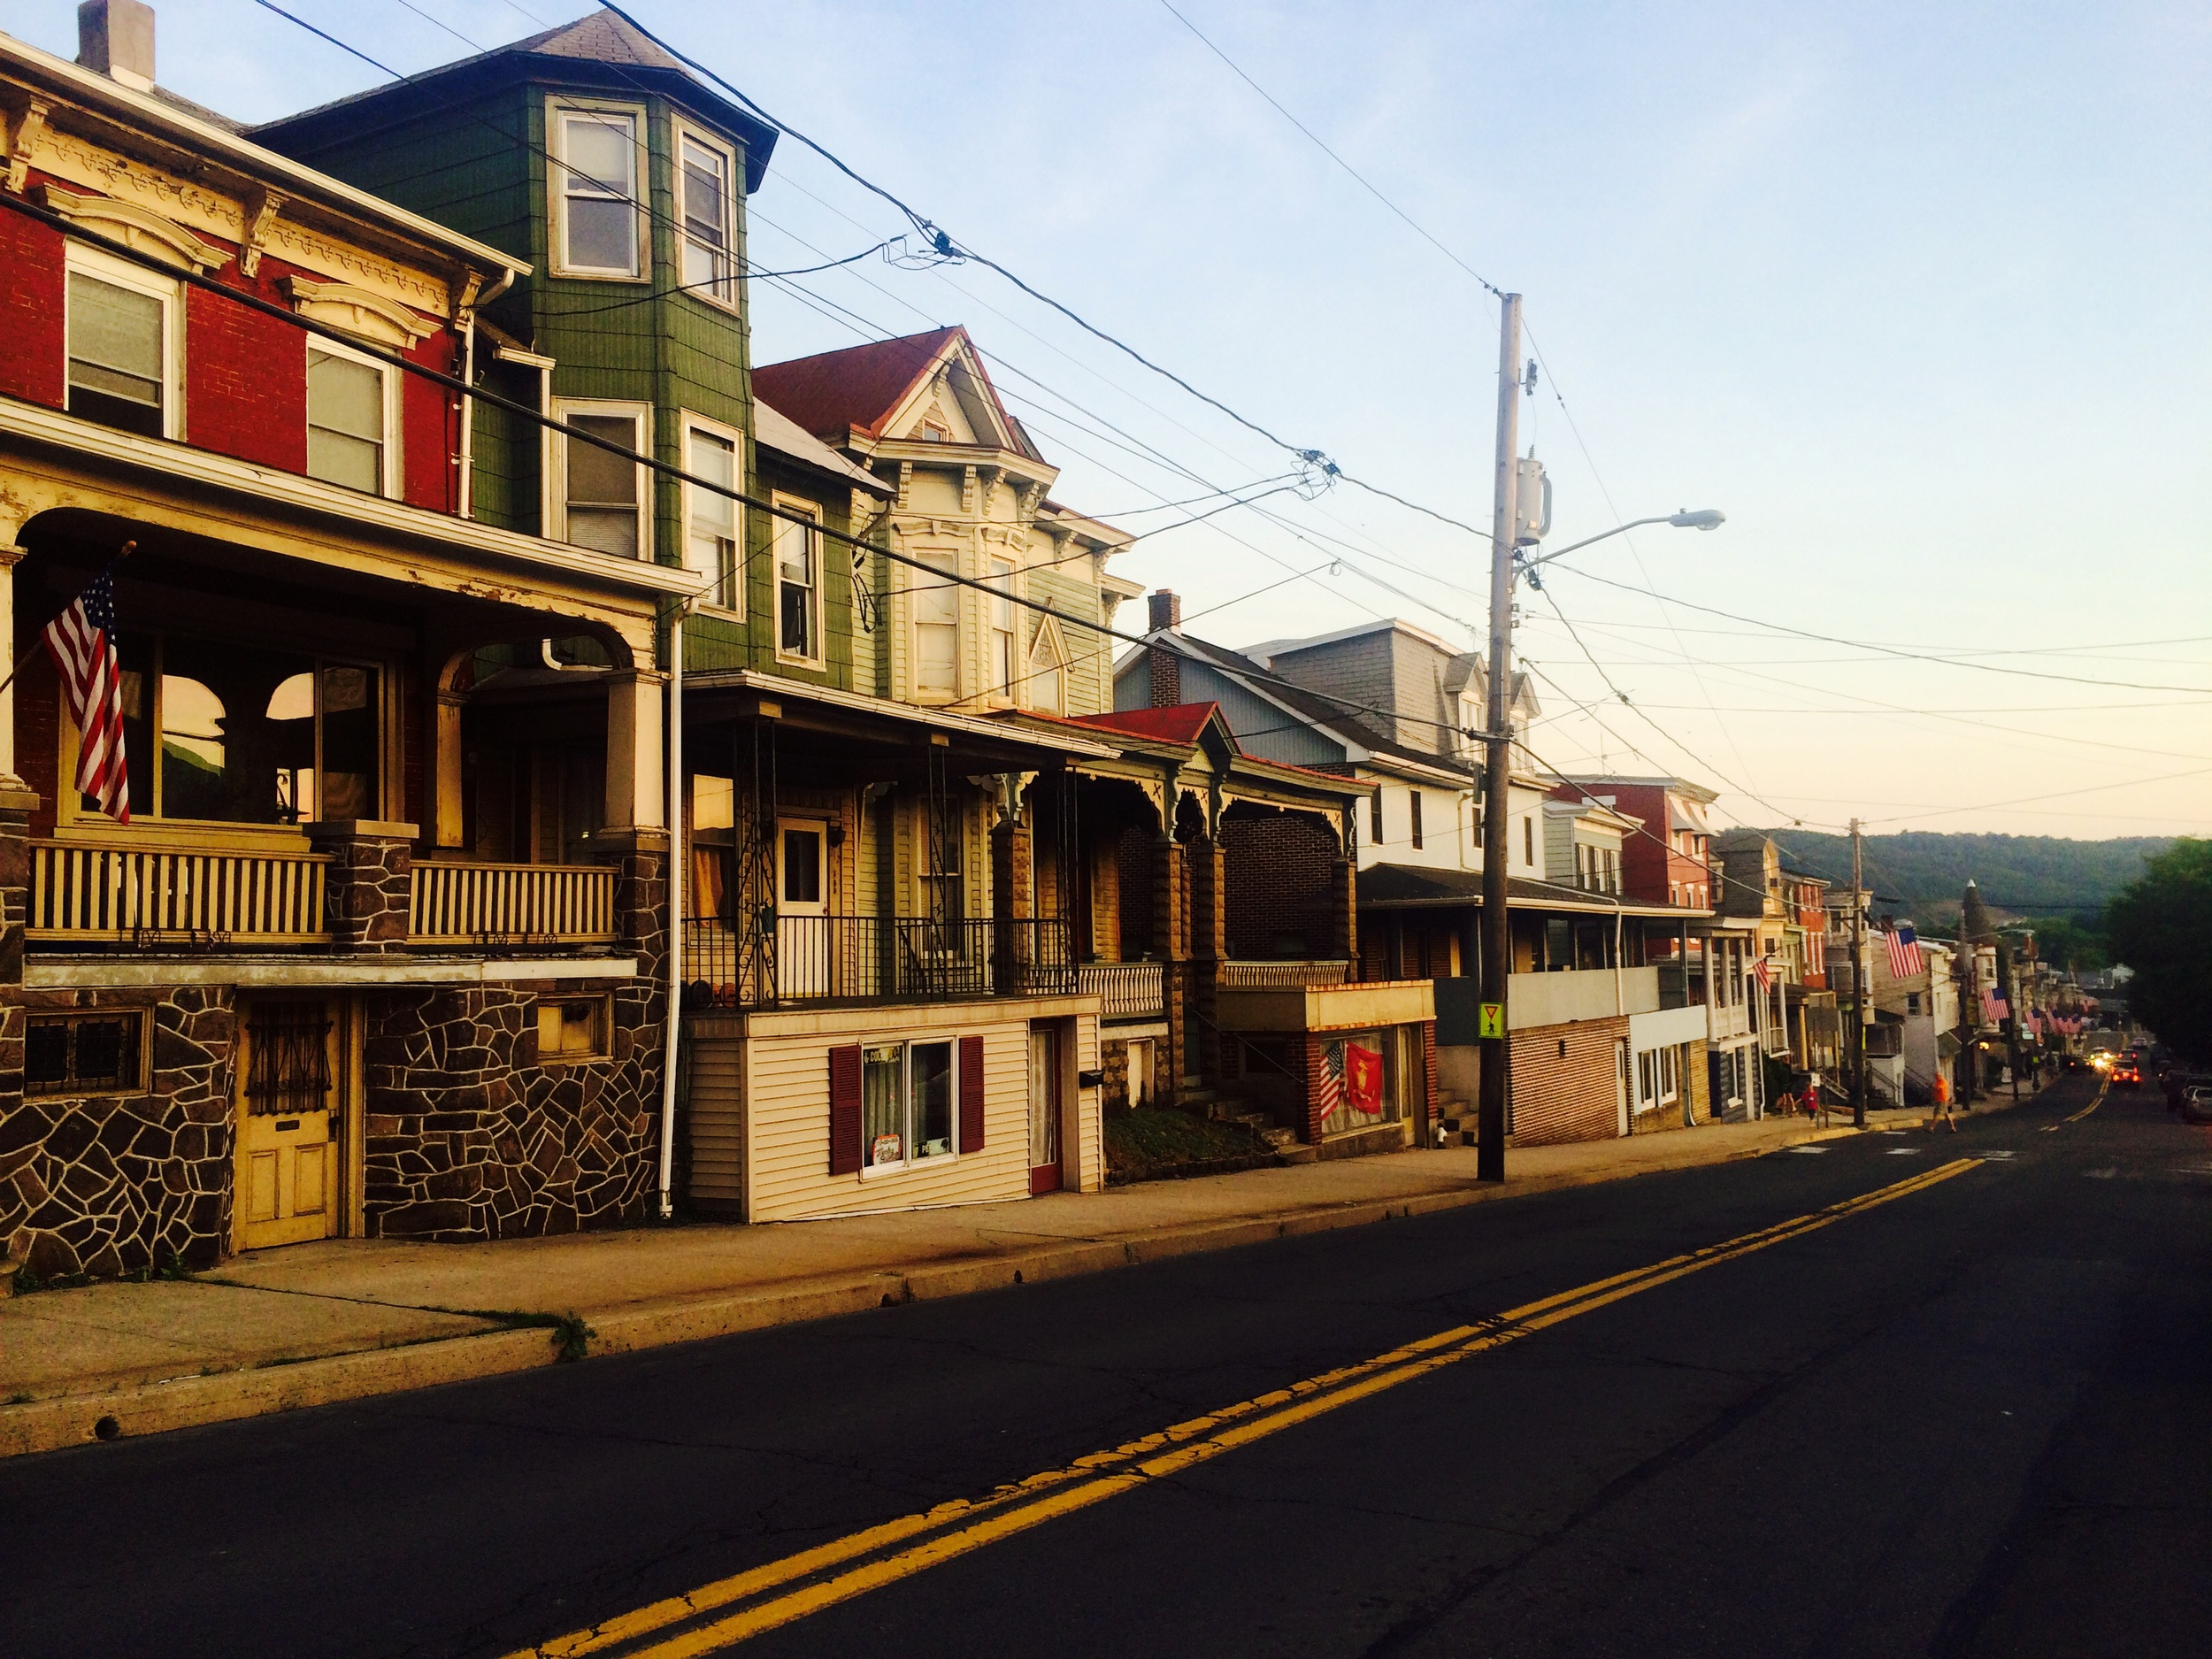 Sunset in Schuykill Haven, PA. It was an adorable town!